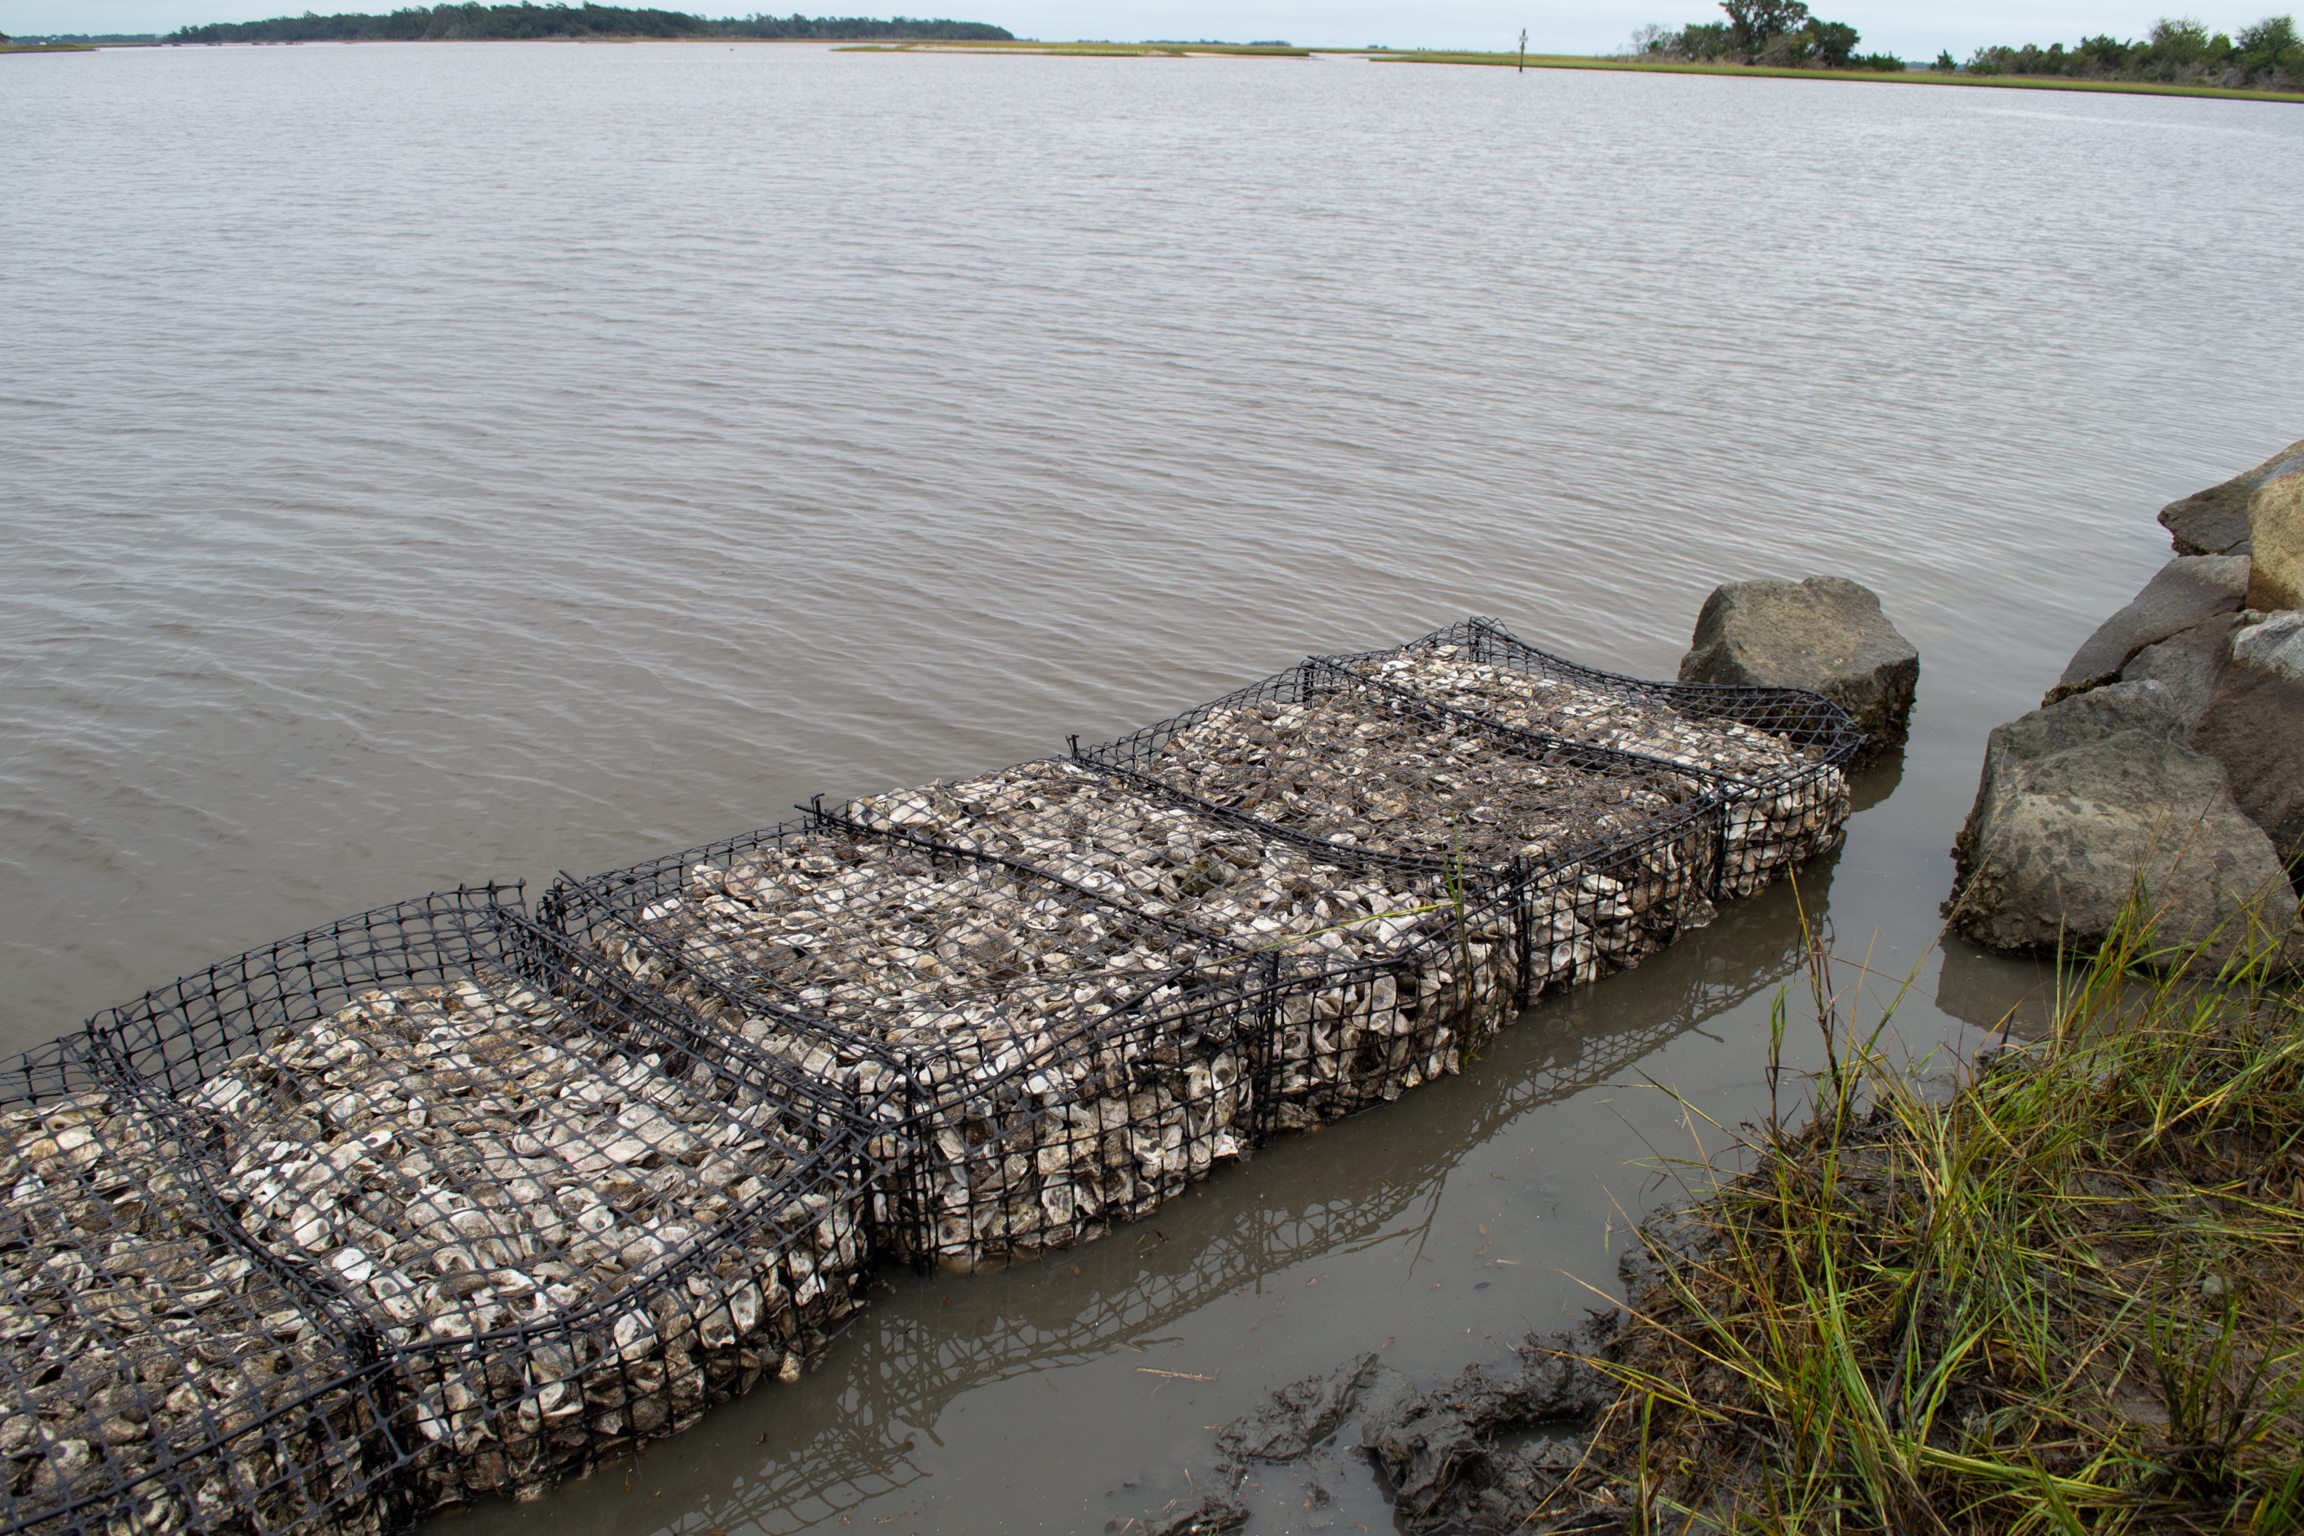 Building Living Shorelines with Oysters